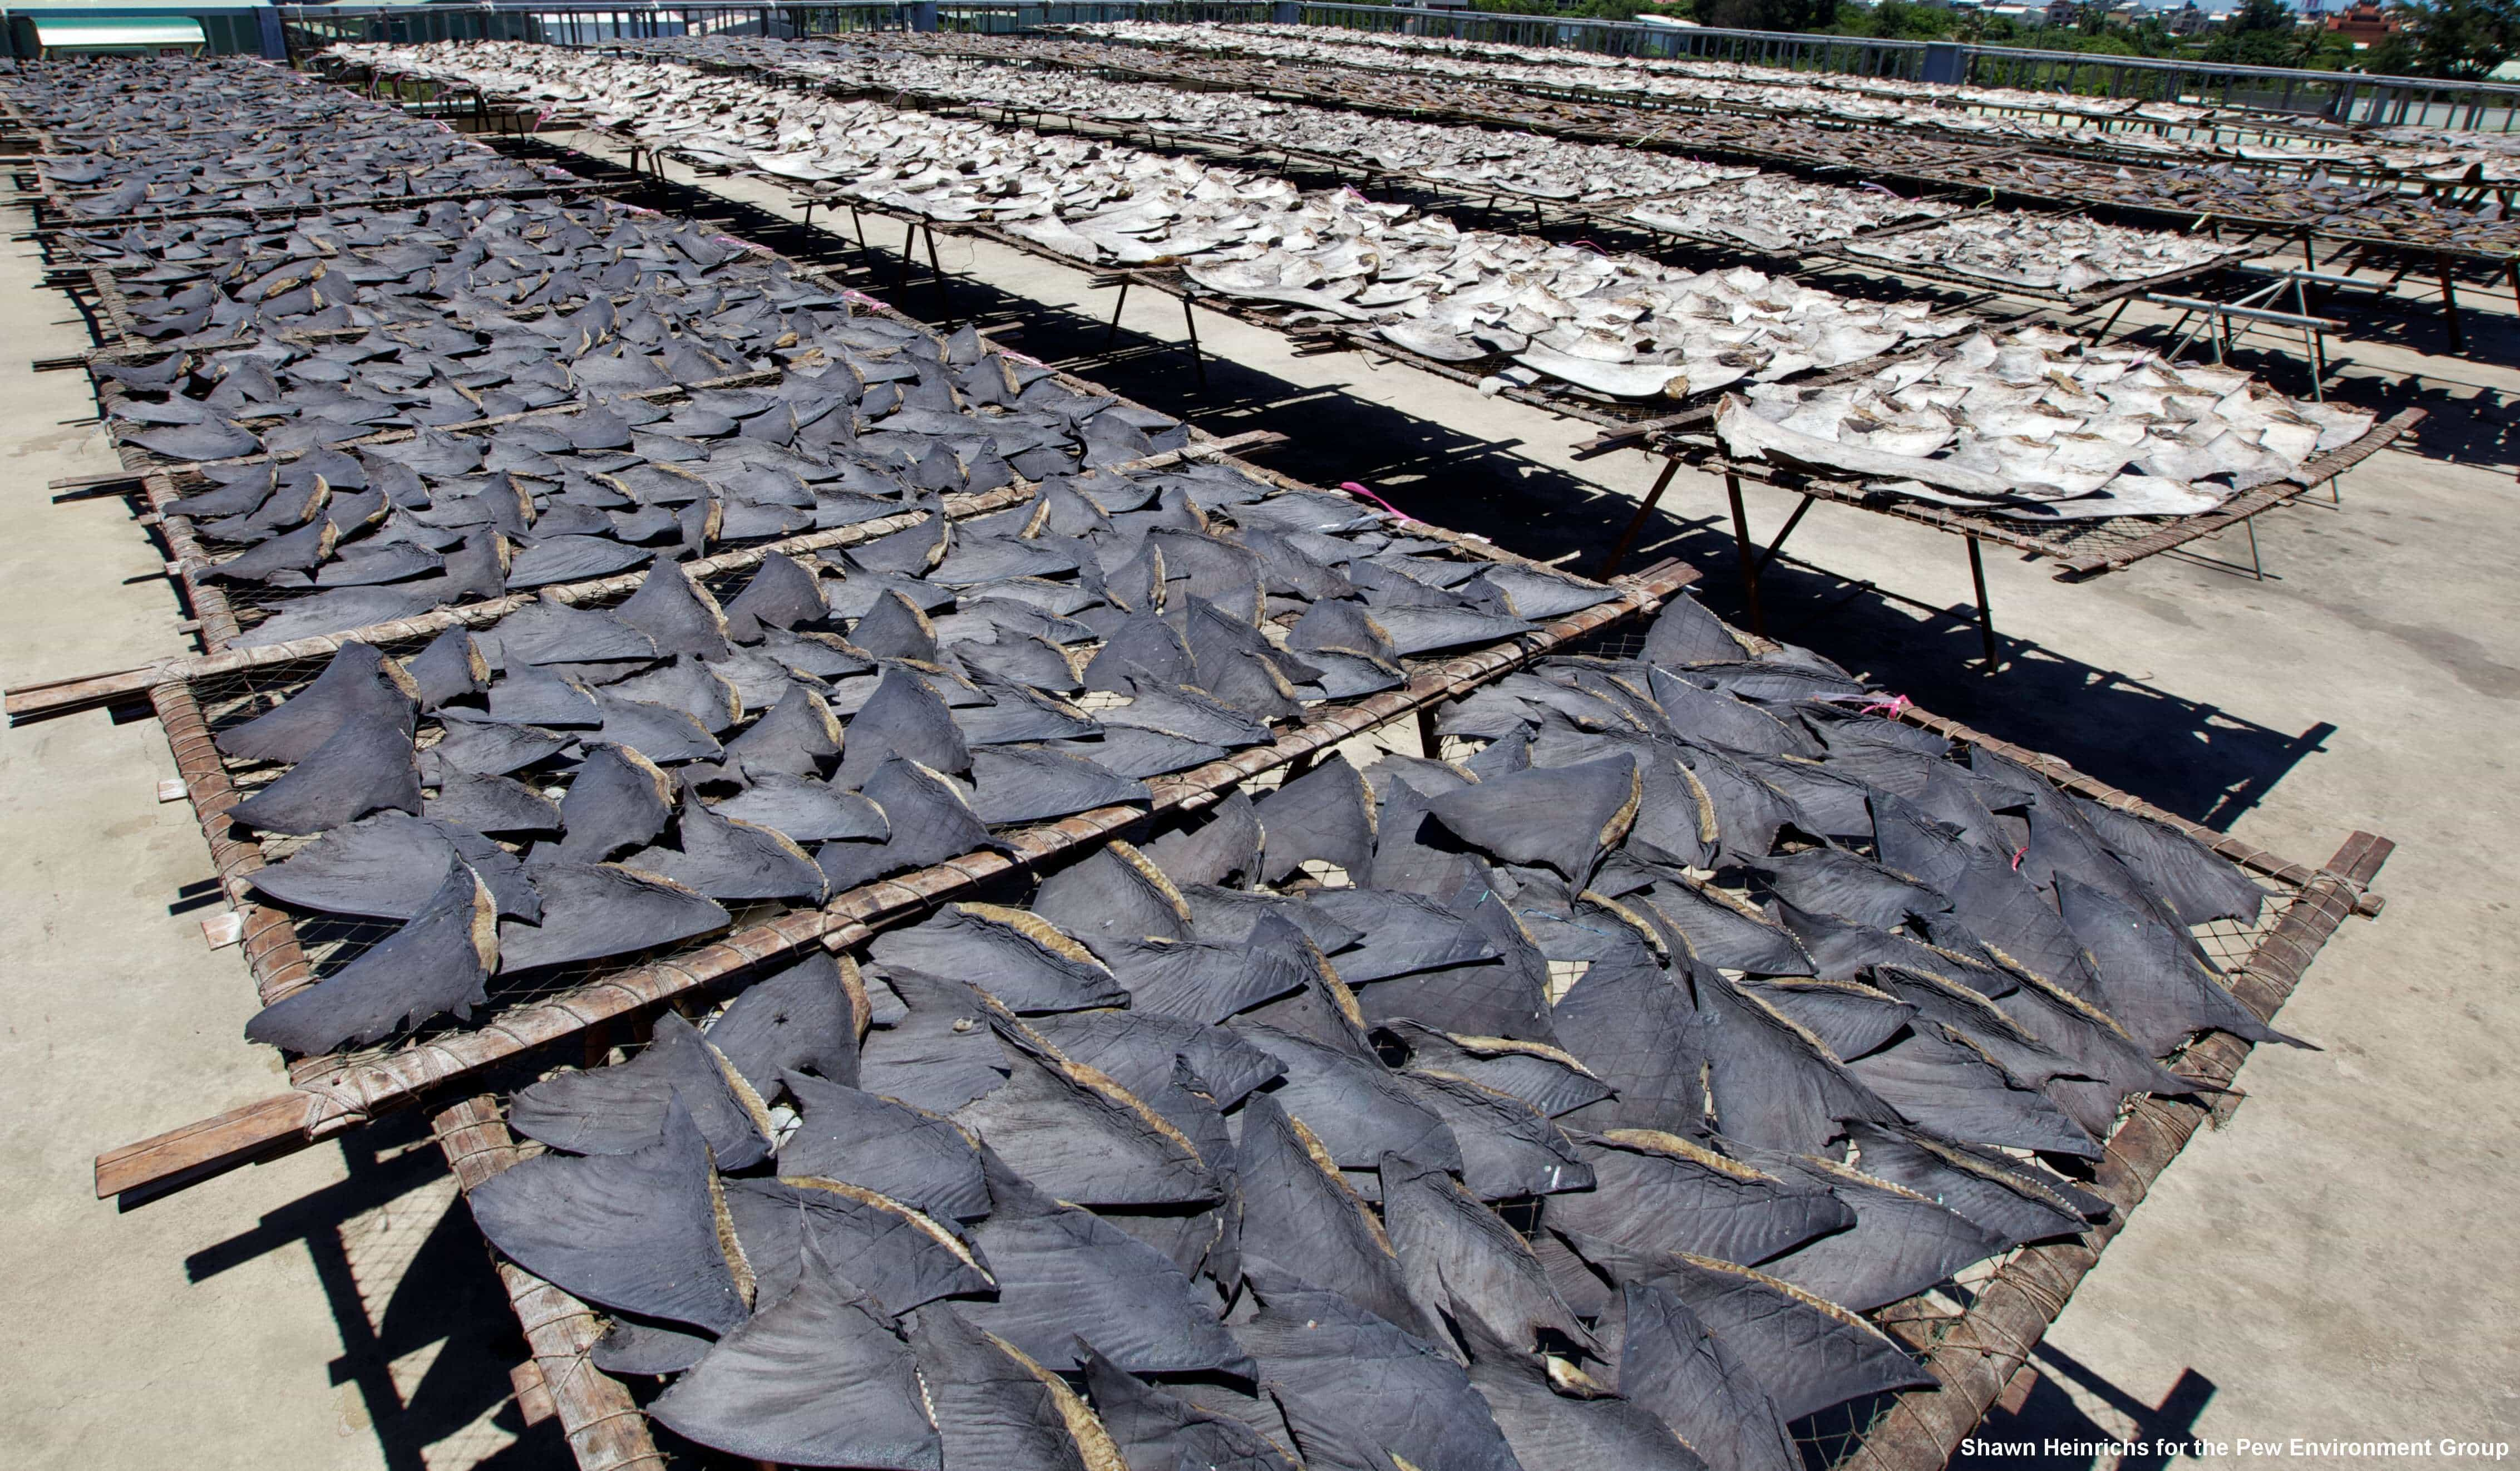 Costa Rica officially bans shark finning